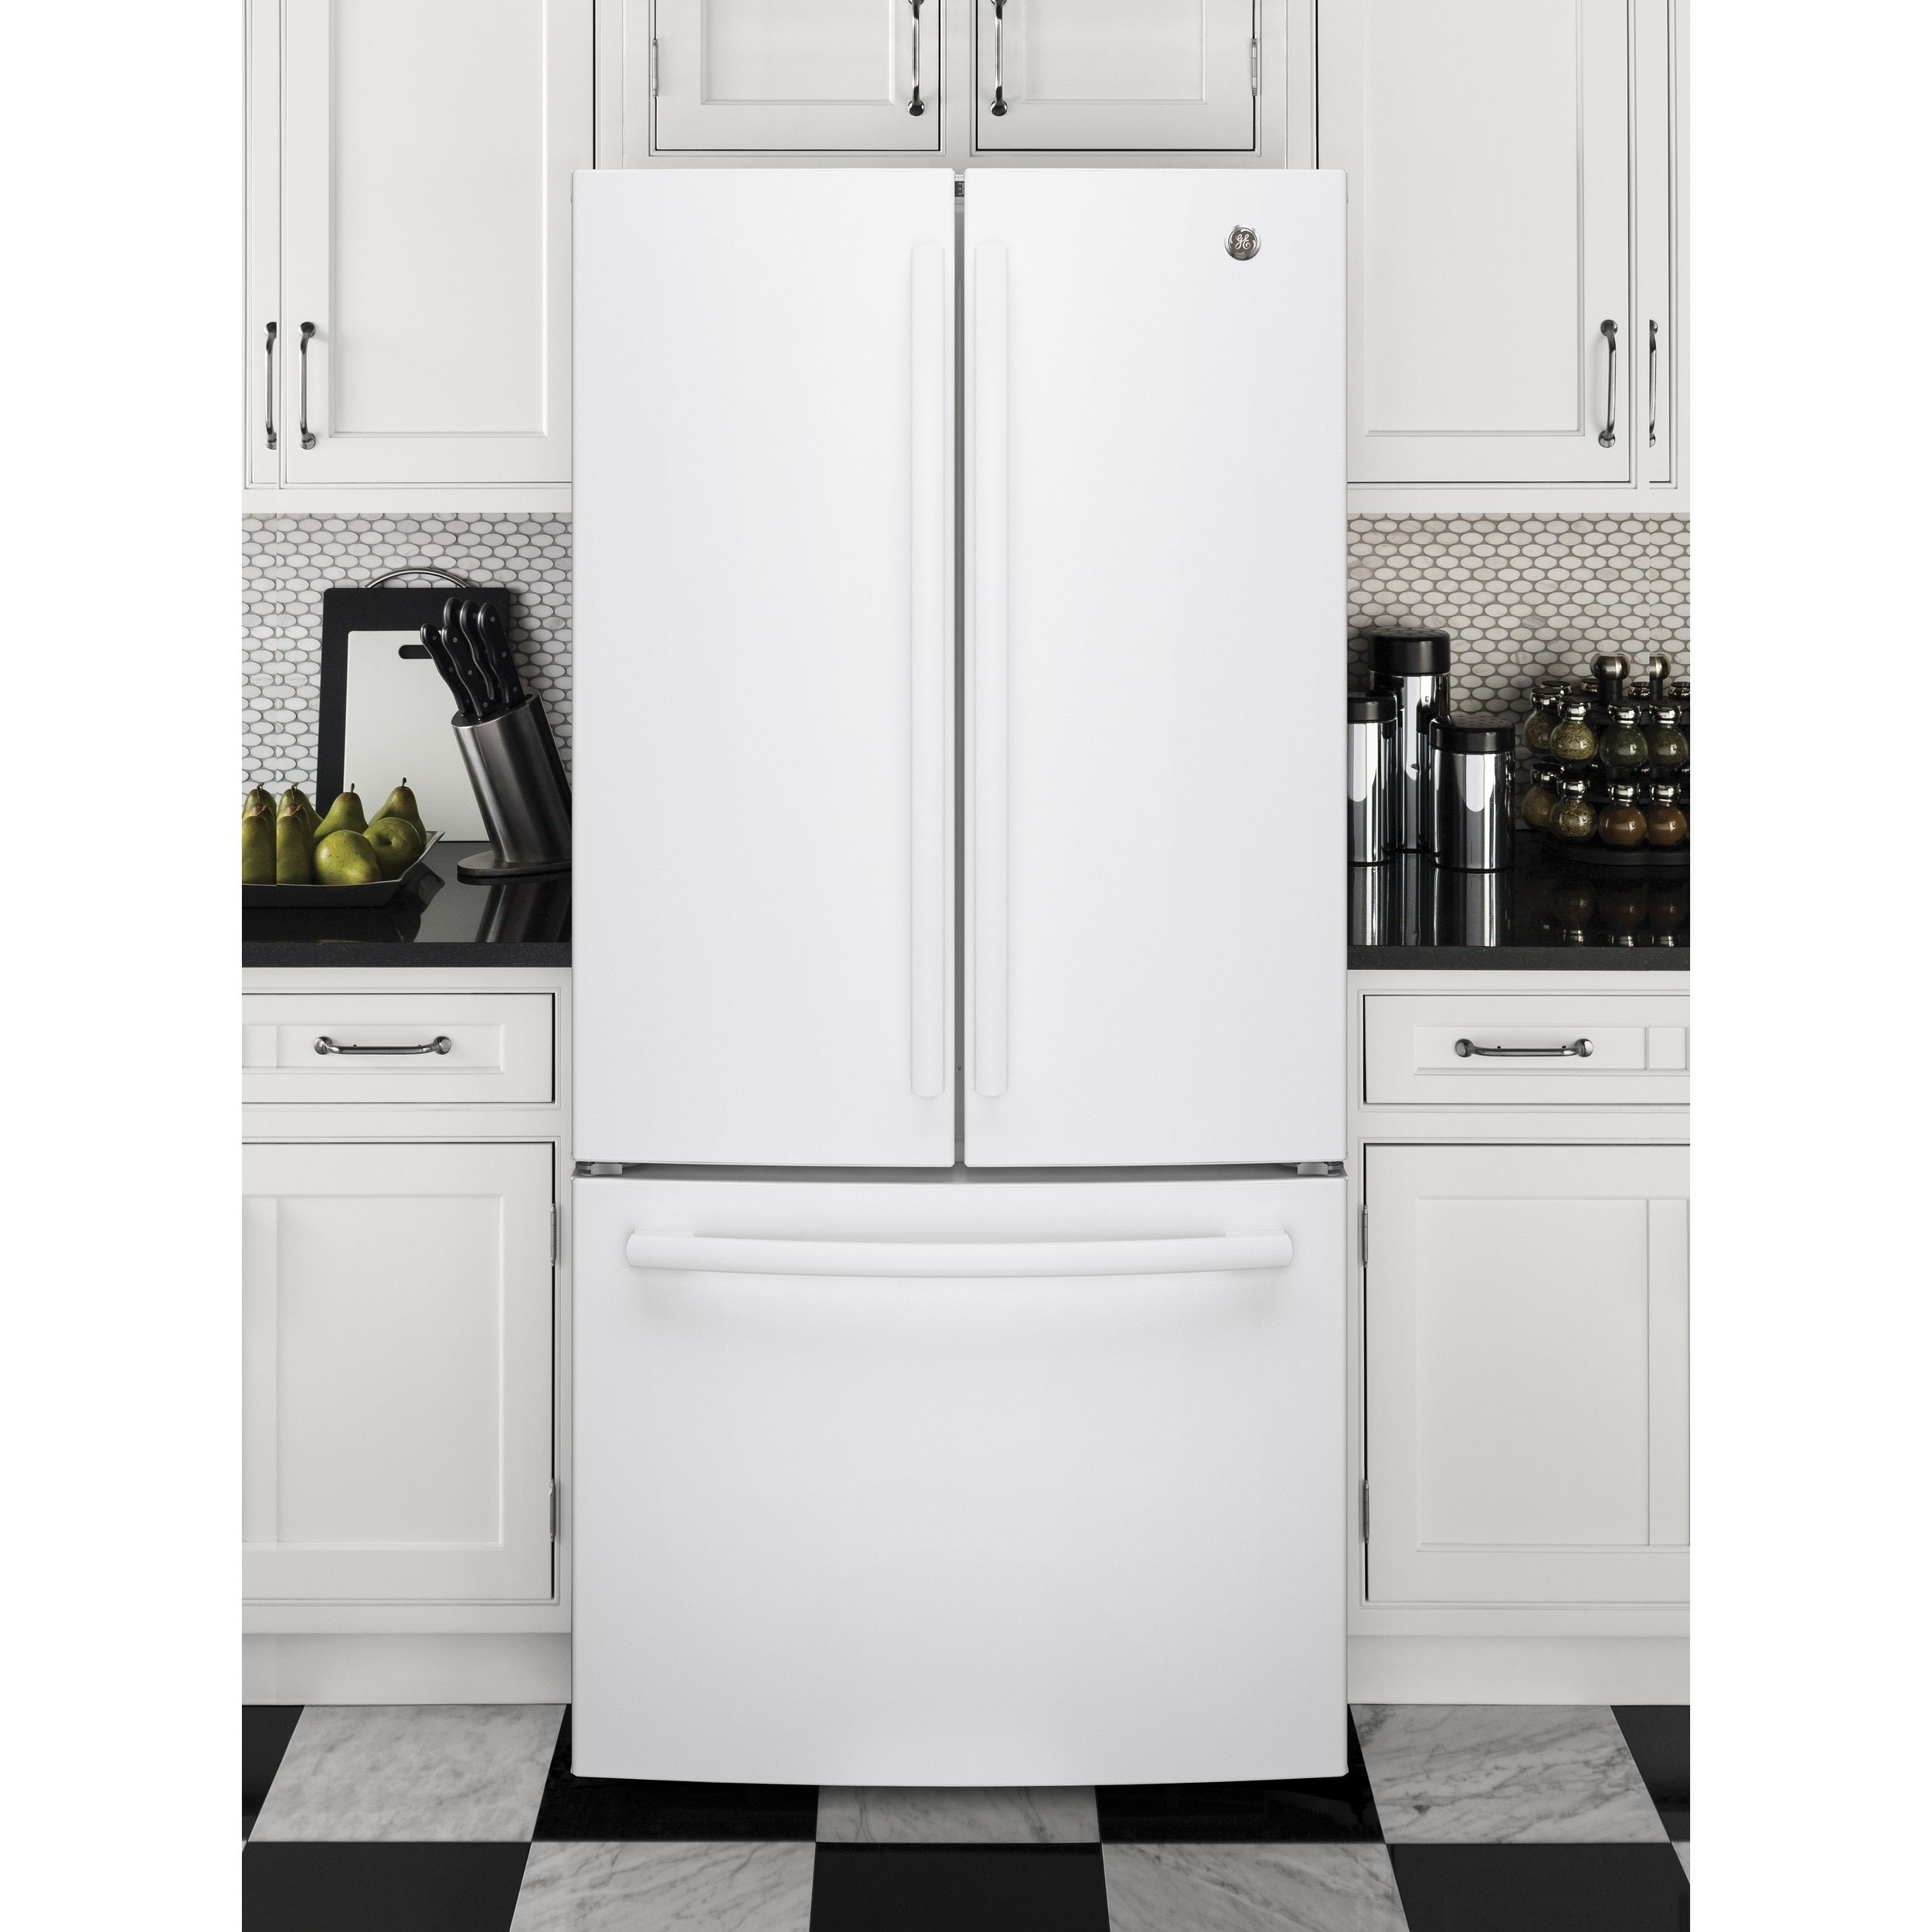 white french door refrigerator. GE Series Energy Star 24.8 Cu.ft. French Door White Refrigerator (White) | Refrigerator, And